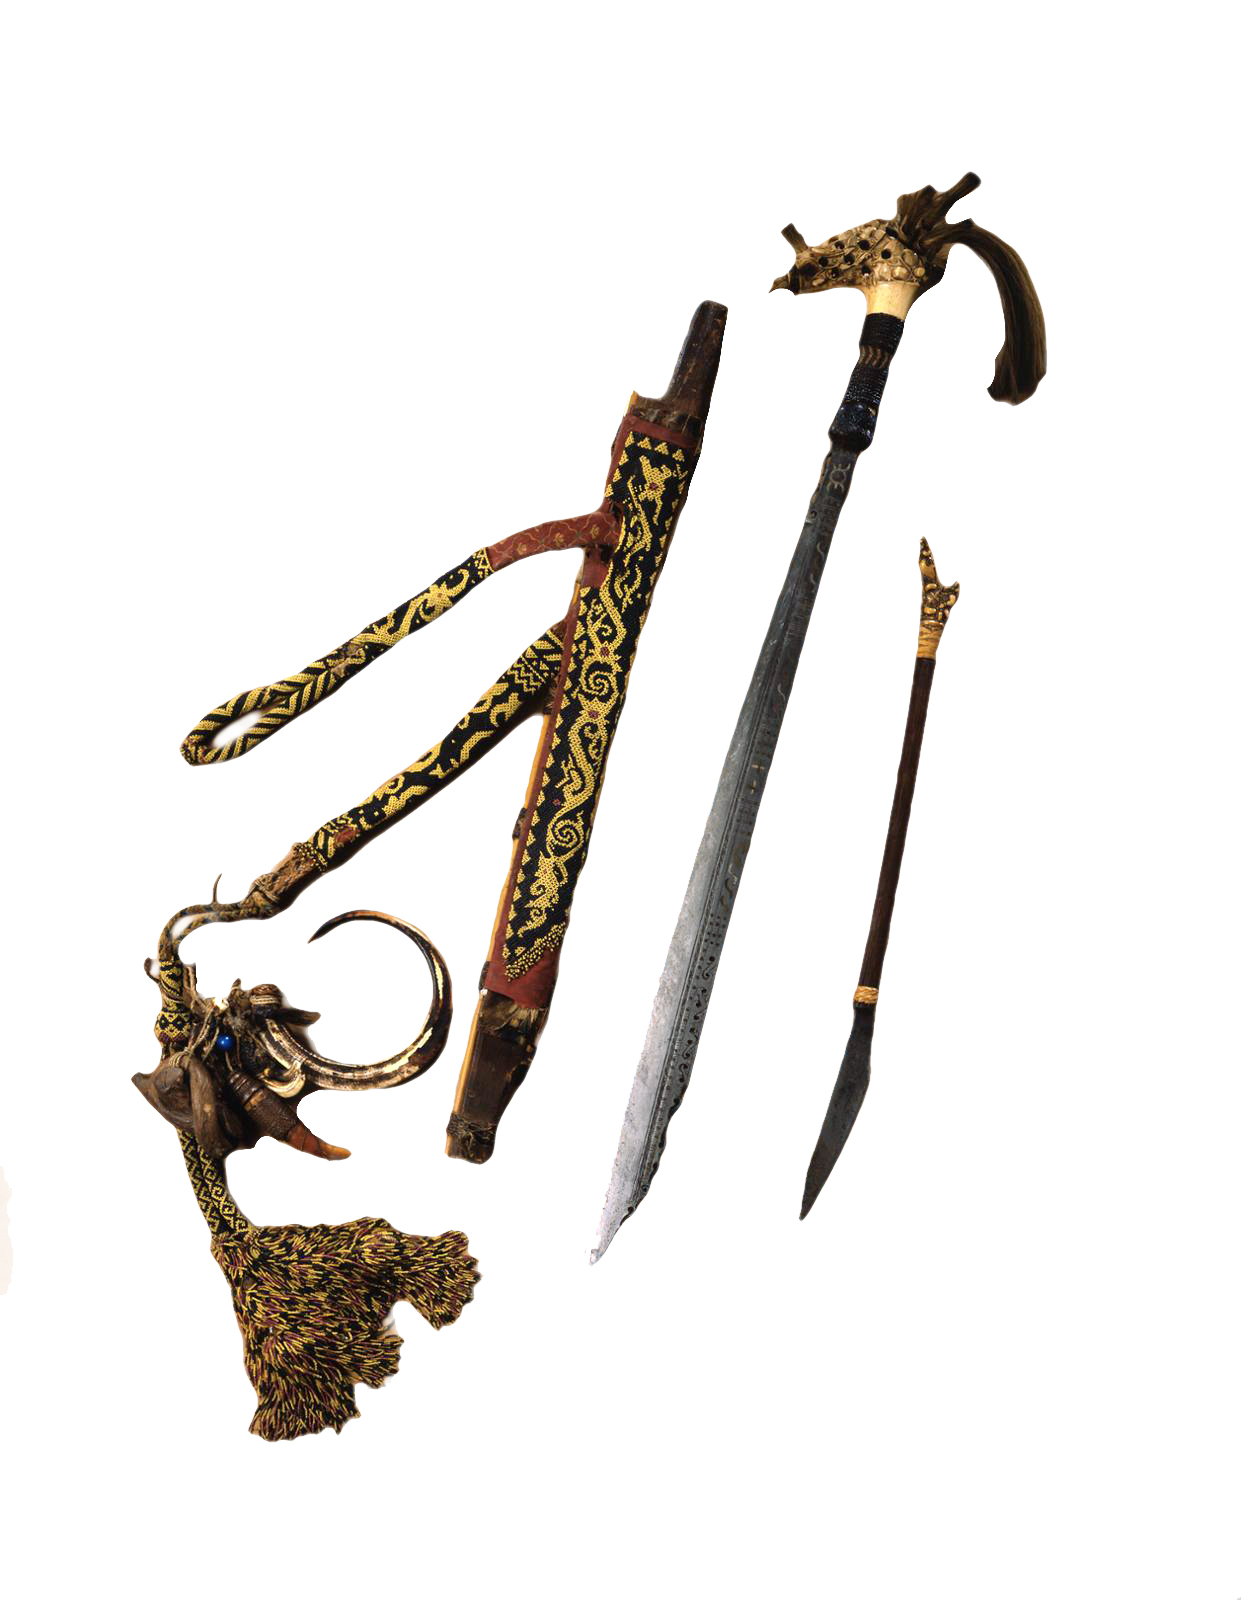 Kayan Sword | Borneo © University of Pennsylvania Museum of Archaeology and Anthropology